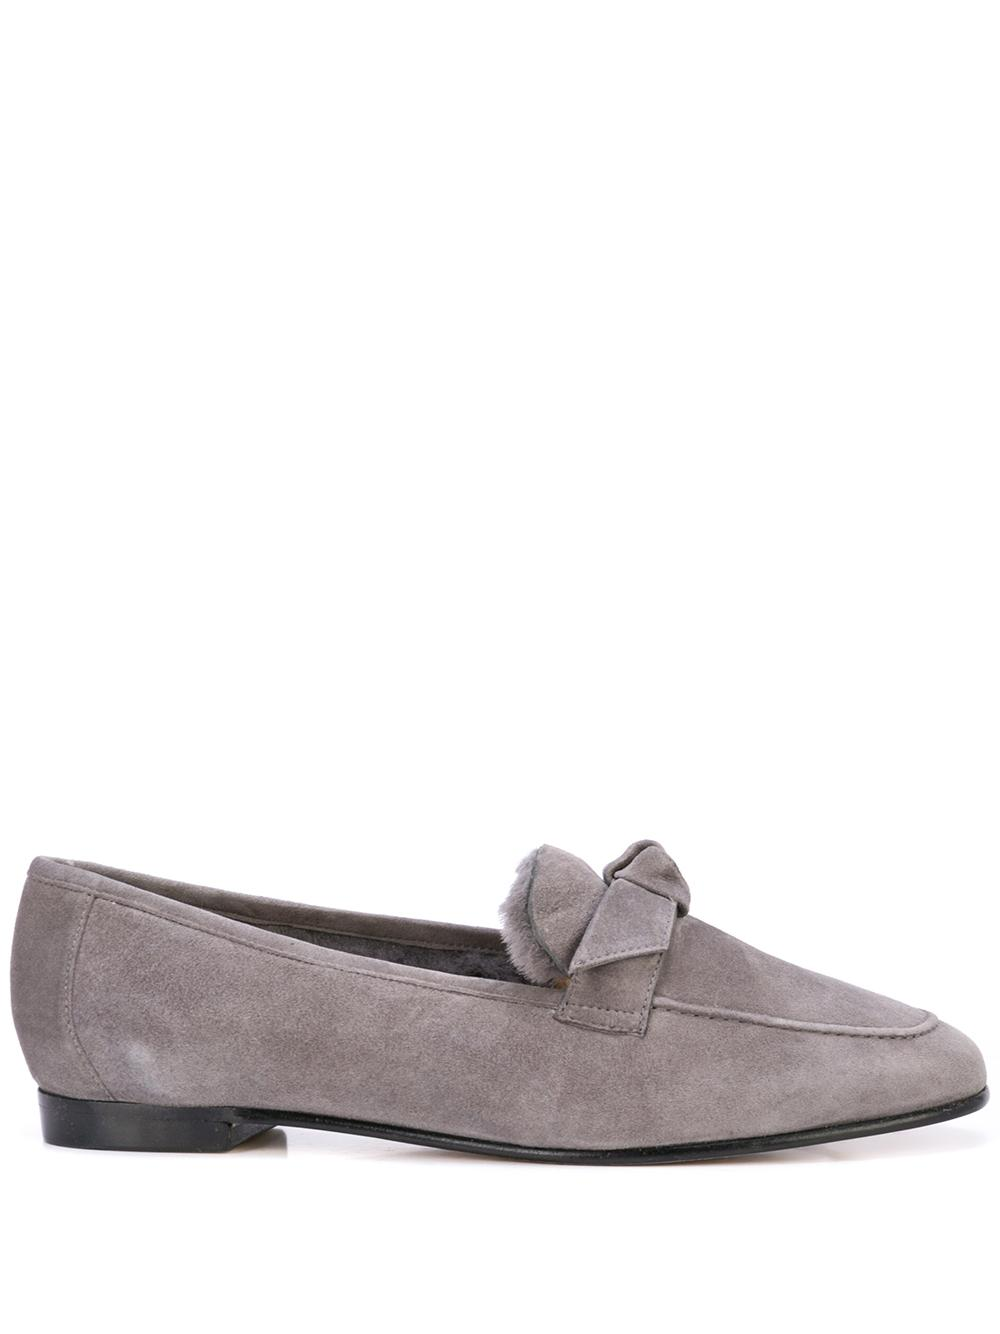 Becky Pelo 20mm Sheerling Loafer Item # B7700000030002